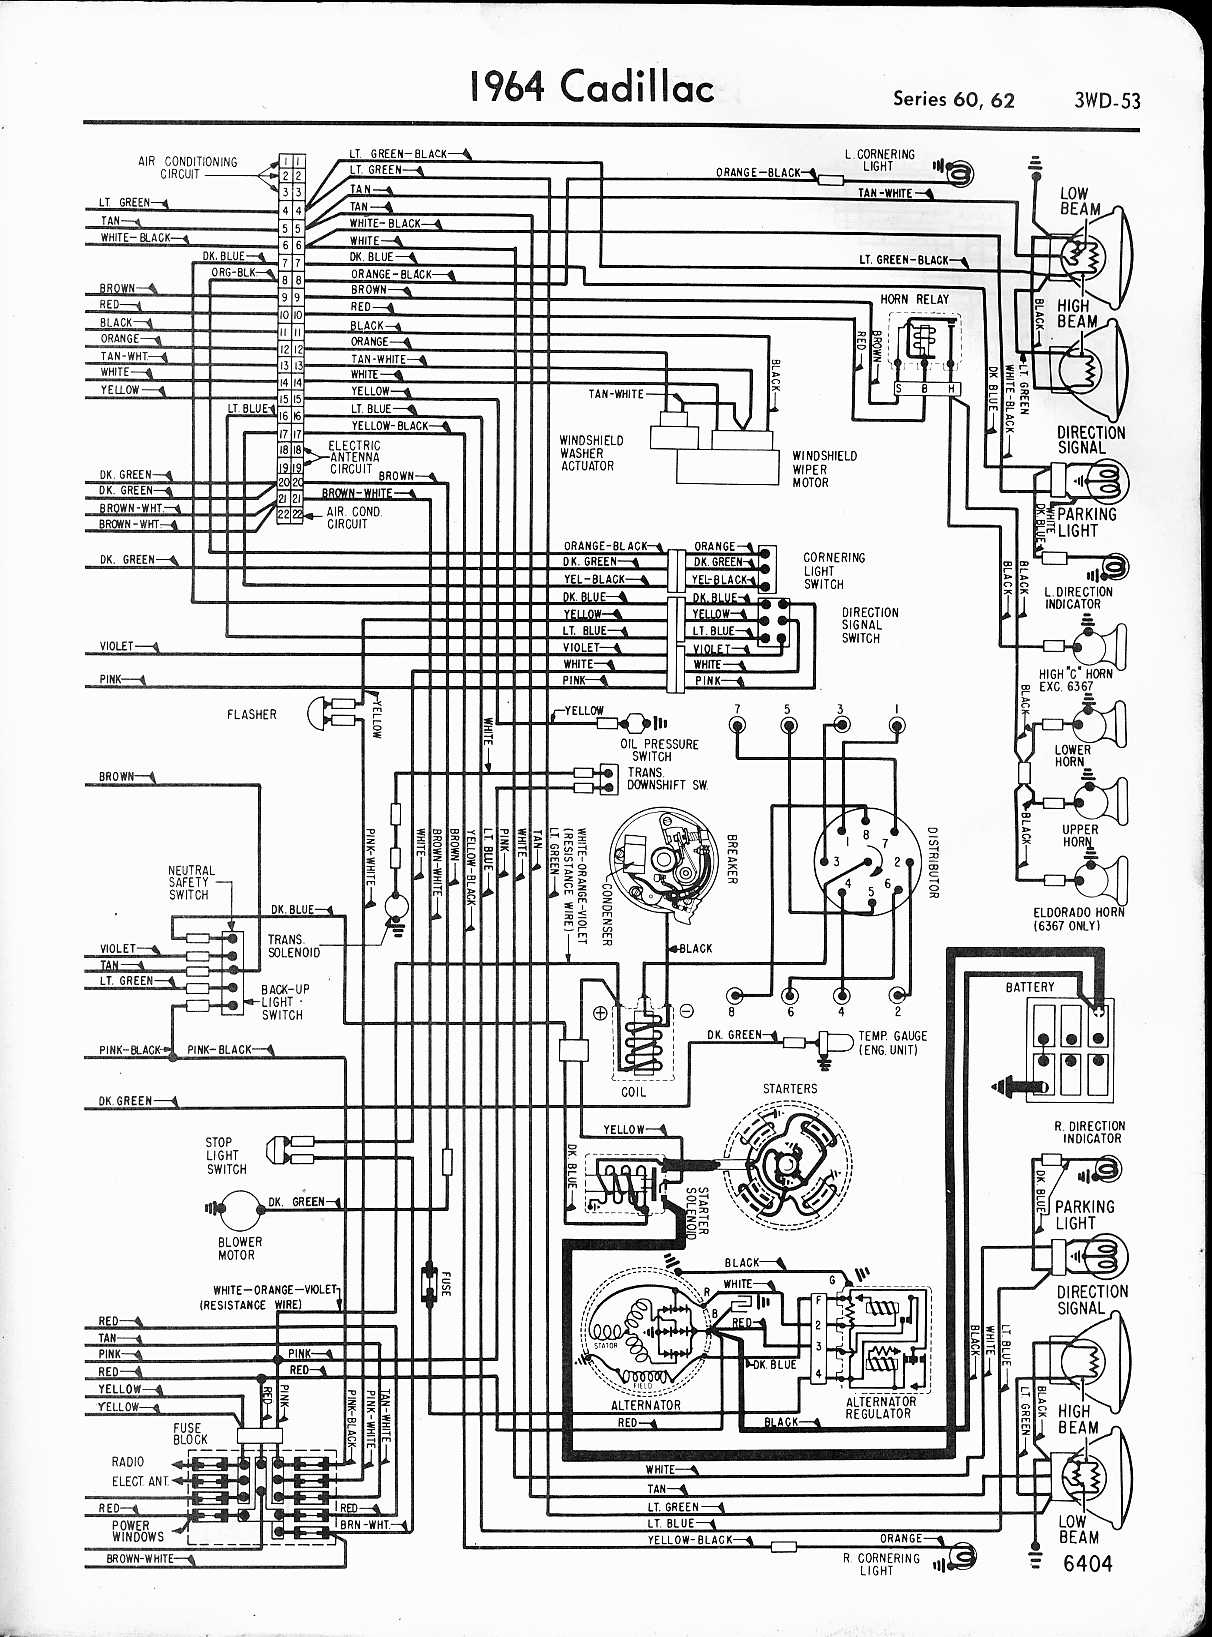 [SCHEMATICS_4FR]  ☑ 1966 Cadillac Wiring Diagram HD Quality ☑ express-g-diagram .twirlinglucca.it | Cadillac Start Wiring Diagram |  | Twirlinglucca.it